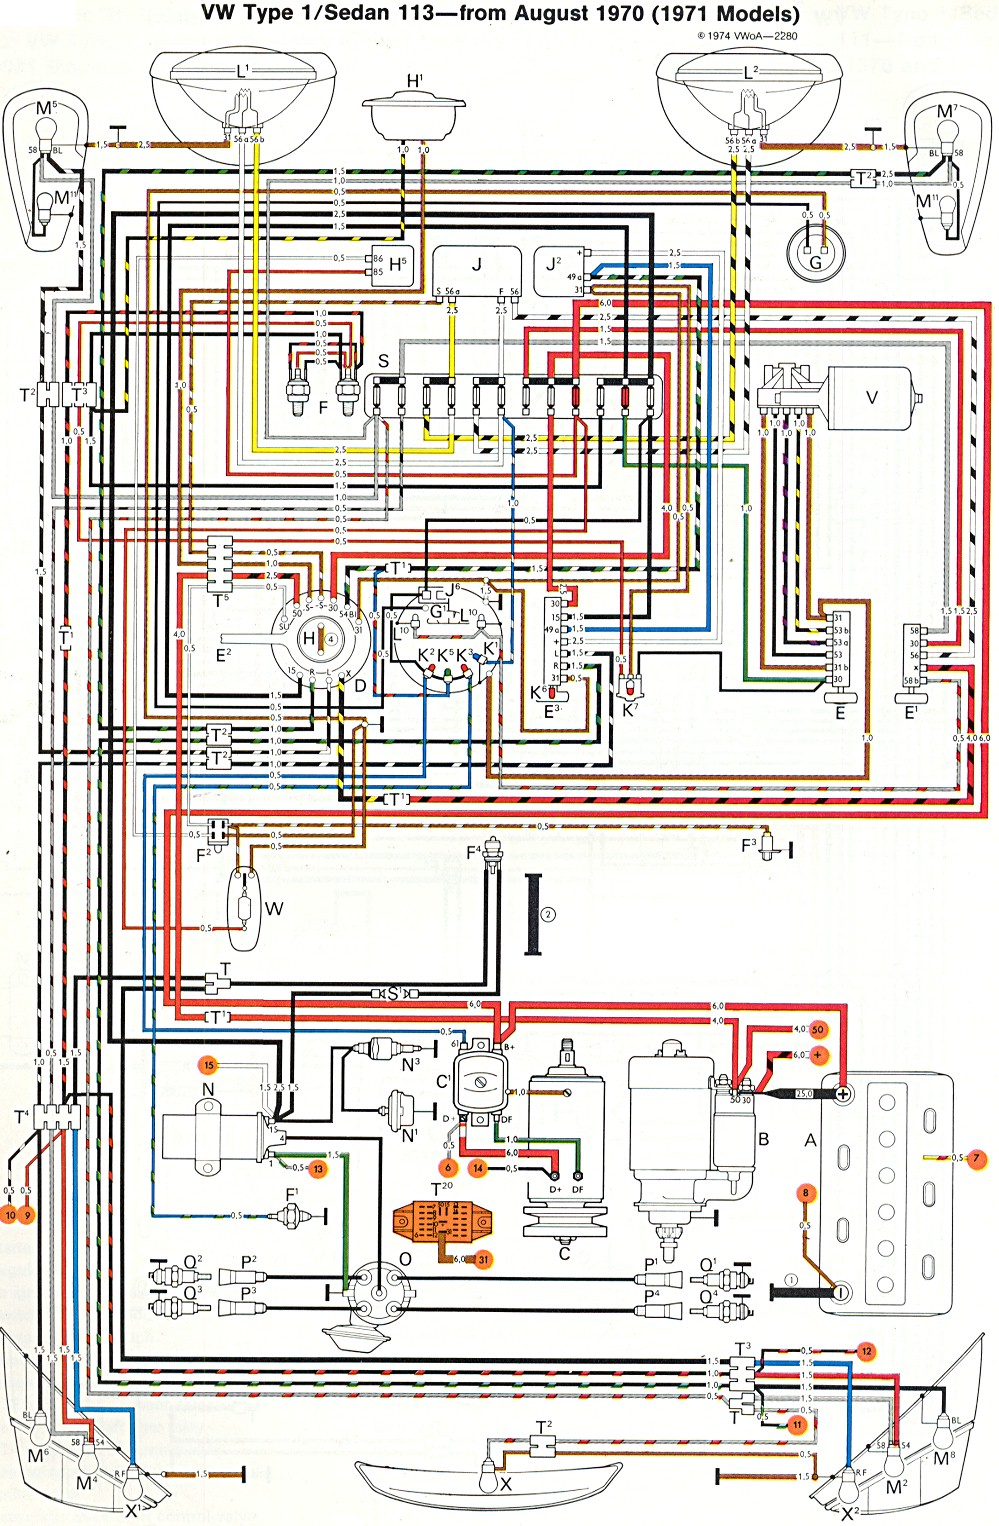 Wiring Diagram For 1975 Vw Beetle : Super beetle wiring diagram thegoldenbug